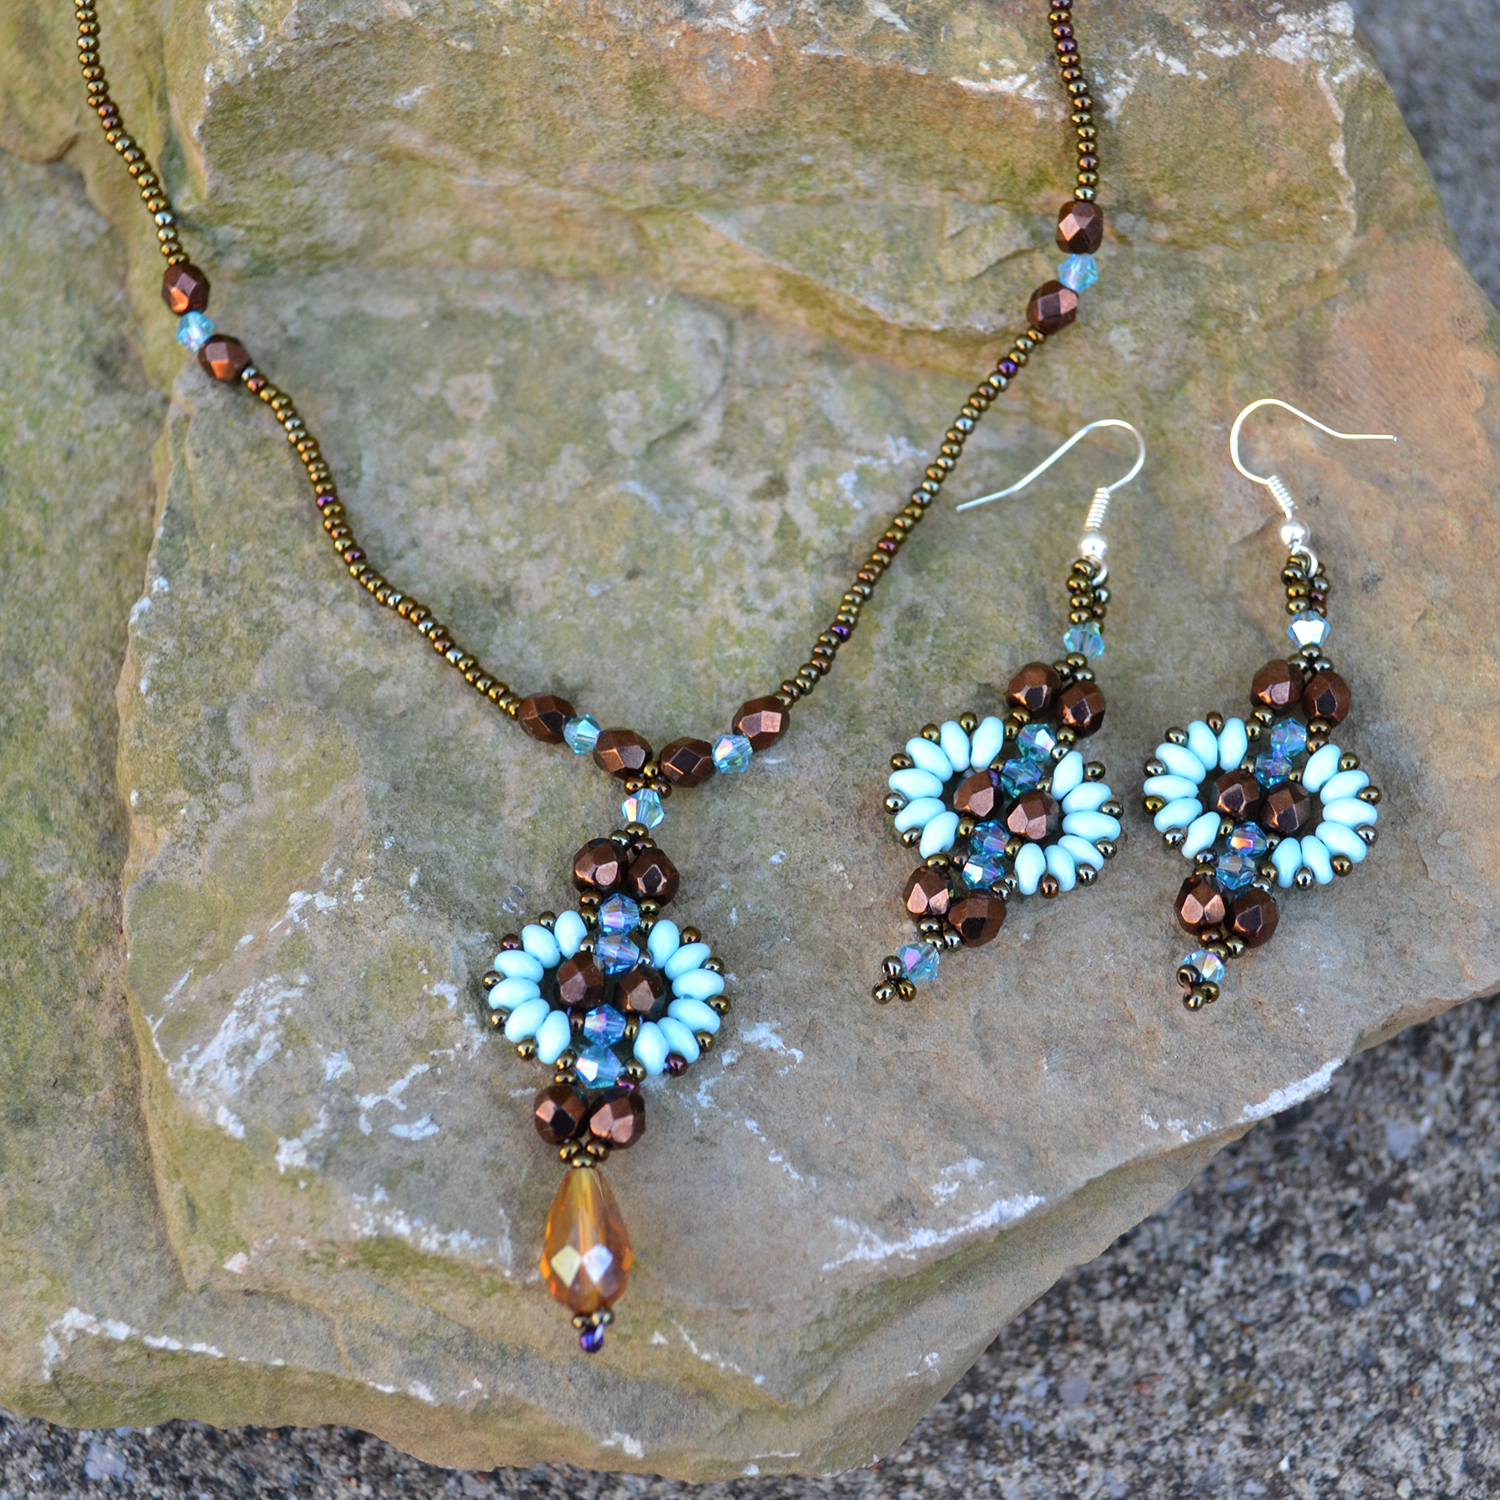 Quetzal Necklace and Quetzal Earrings in turquoise brown